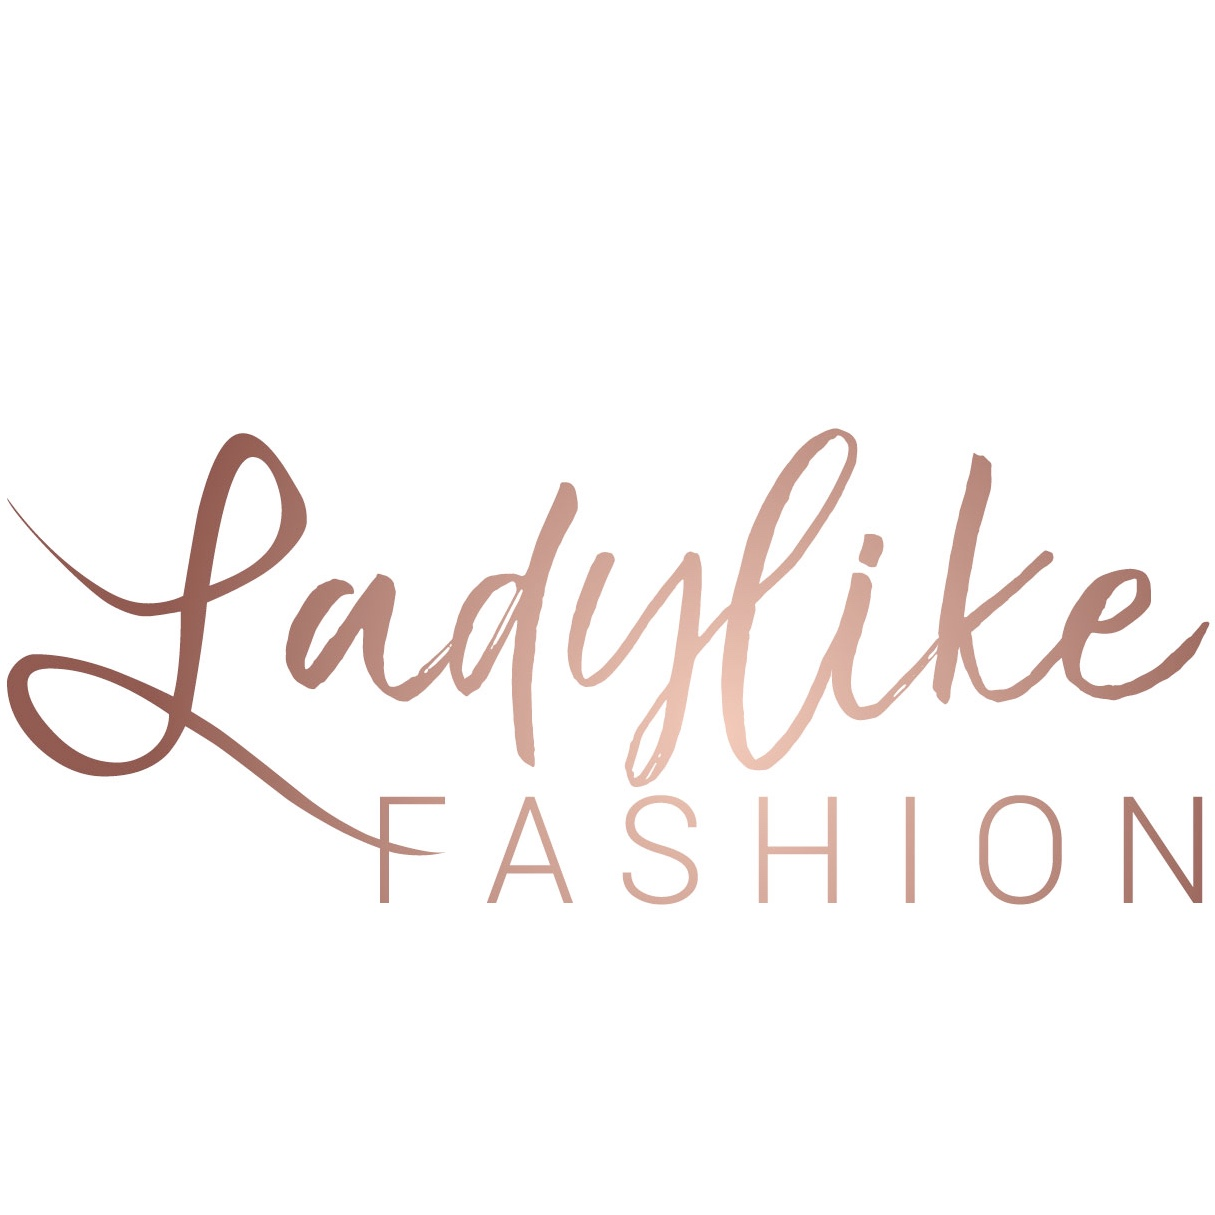 7fd8106cffa Pasjeshouder dare to be wild red - LADYLIKE FASHION MUSTHAVES